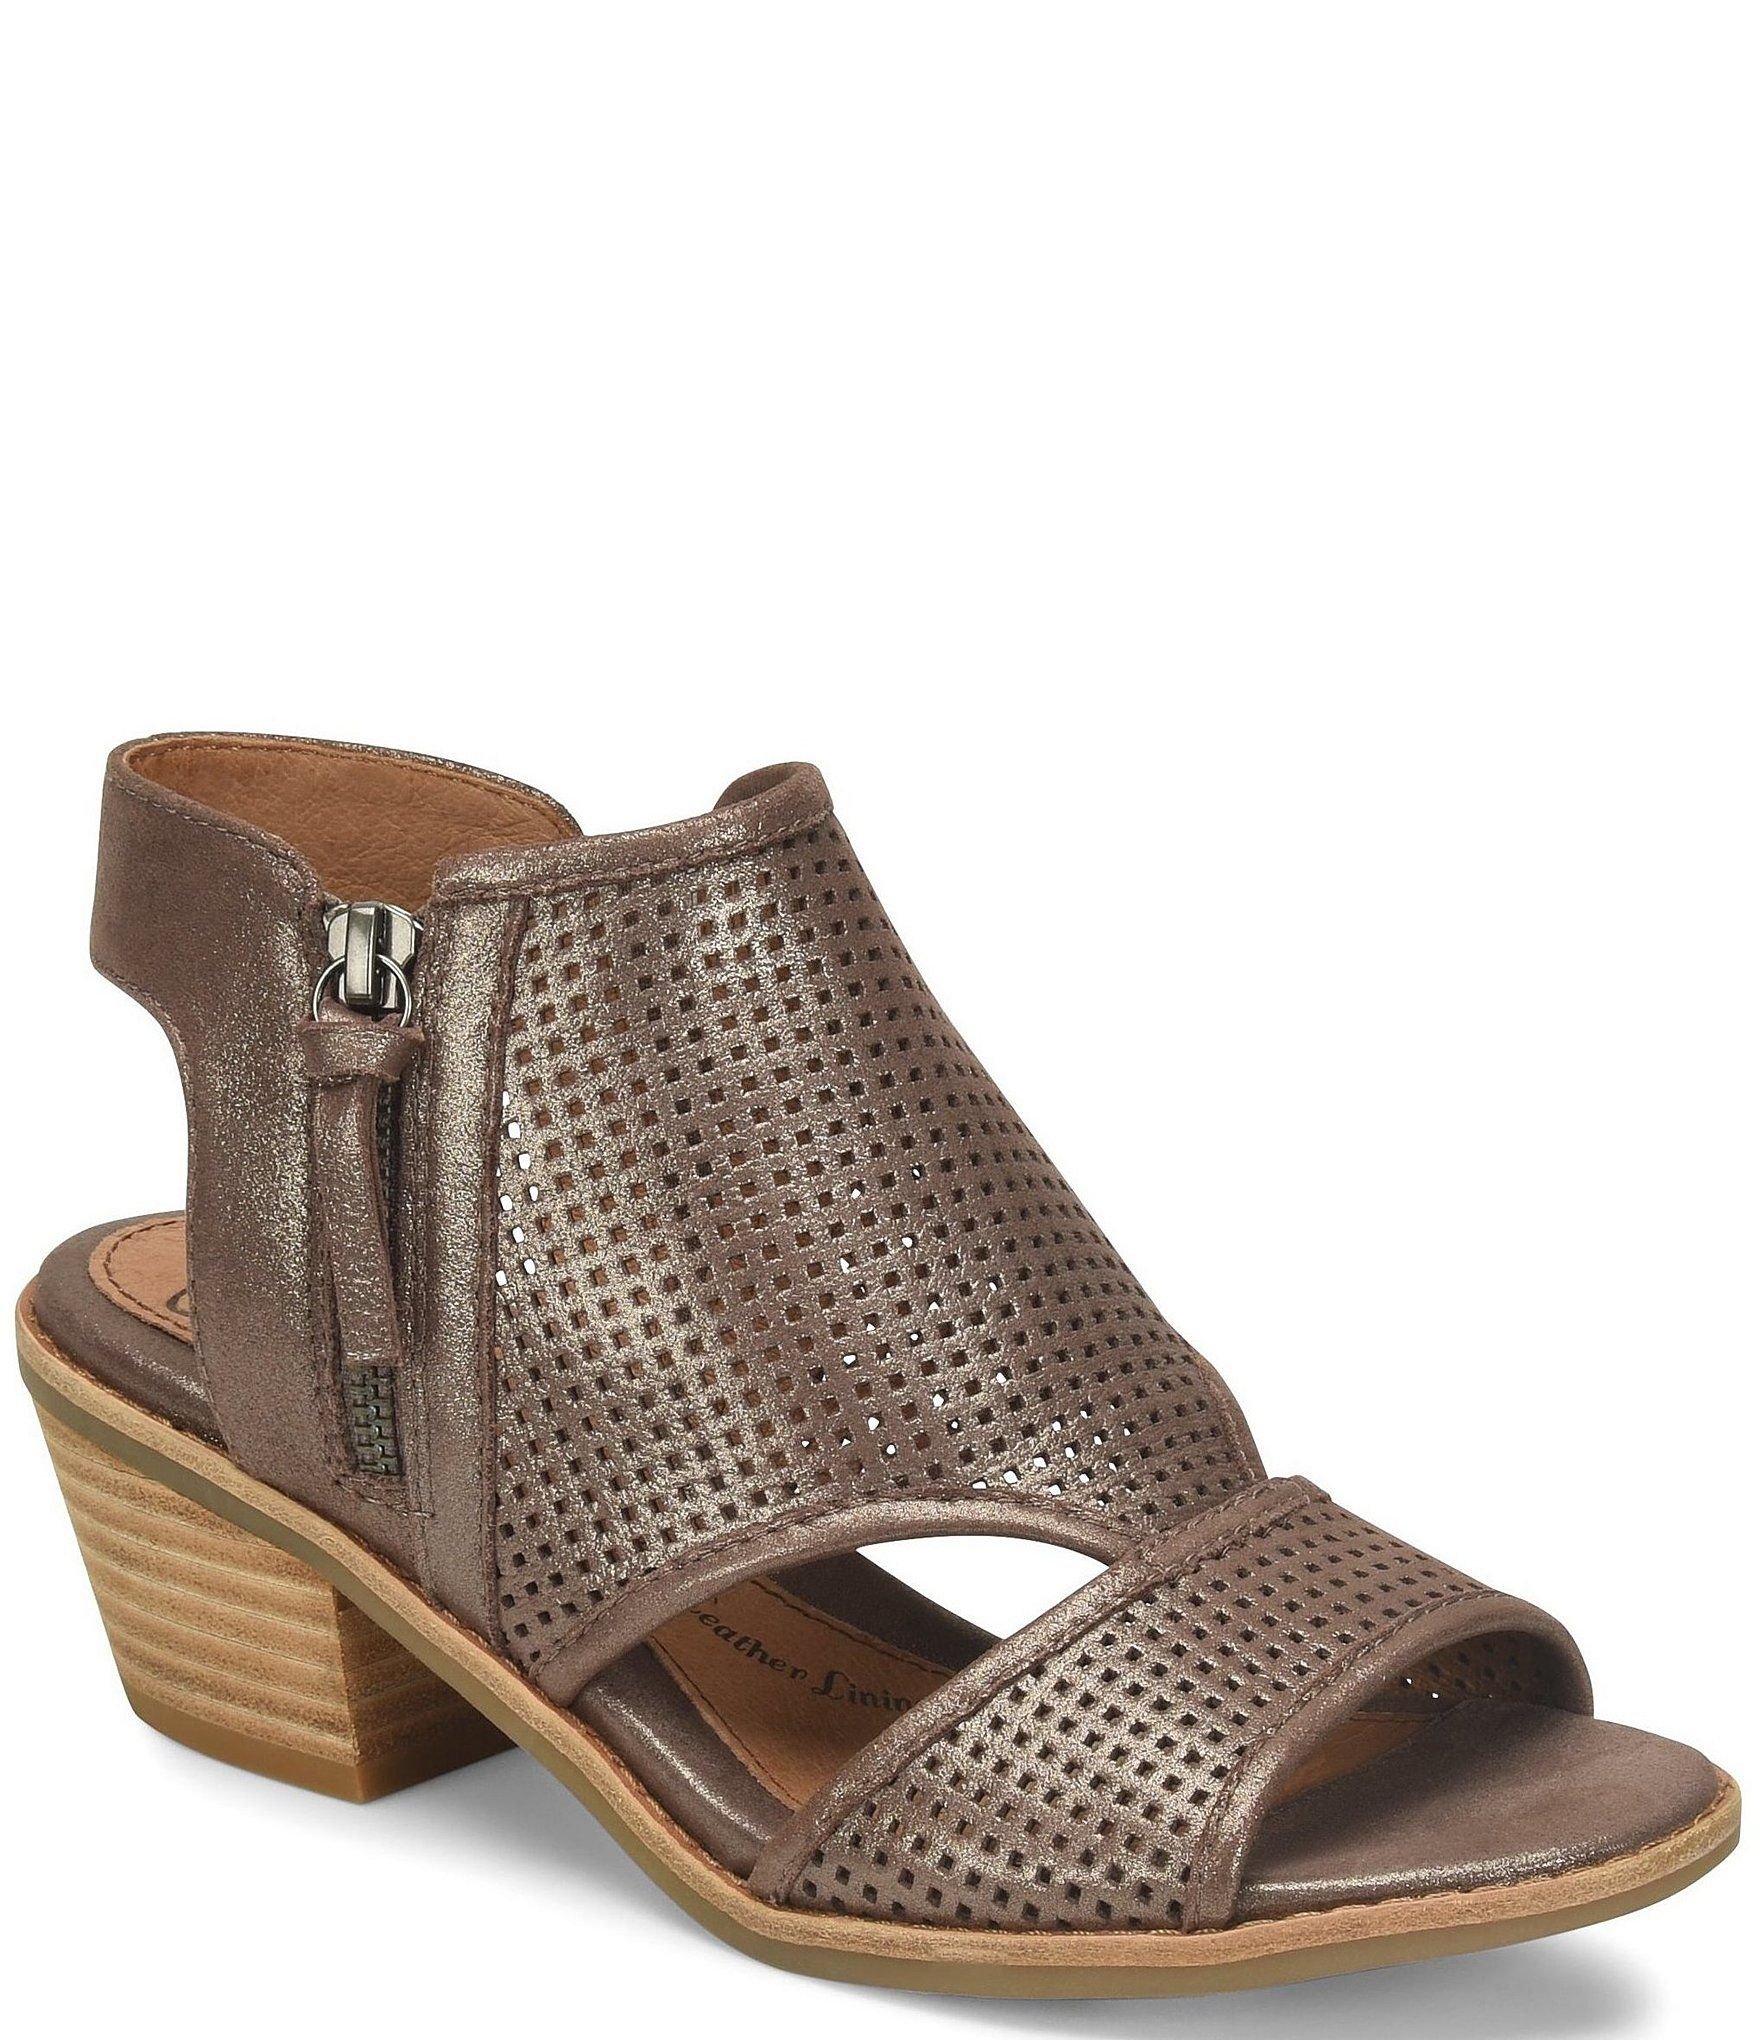 Sofft Sara Perforated Metallic Leather Stacked Heel Sandals - 6M